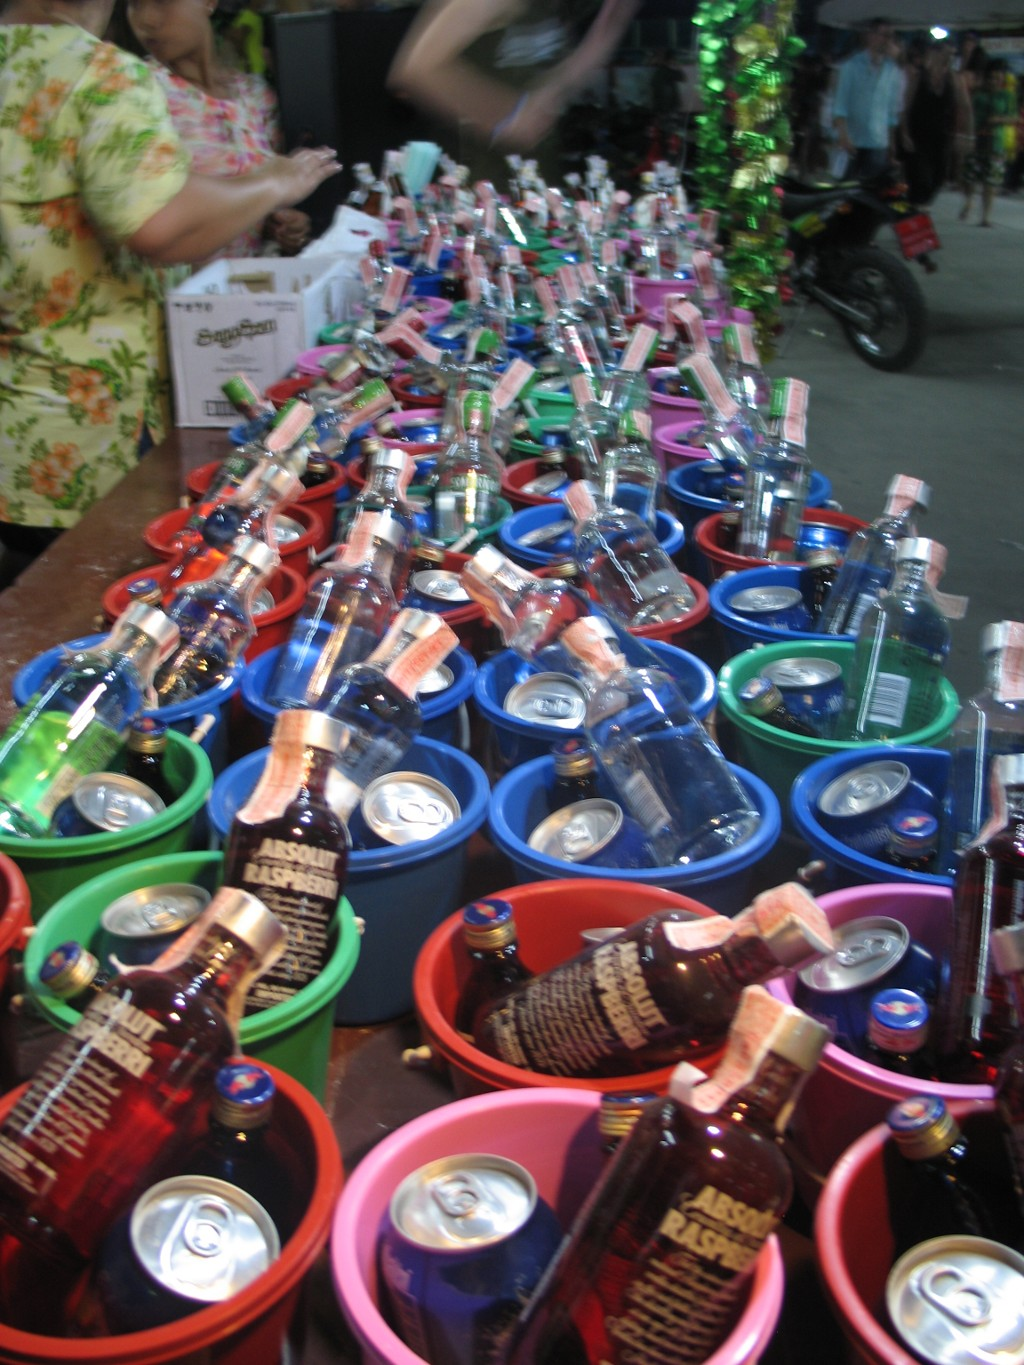 Buckets of alcoholic cocktails at The Full Moon Party